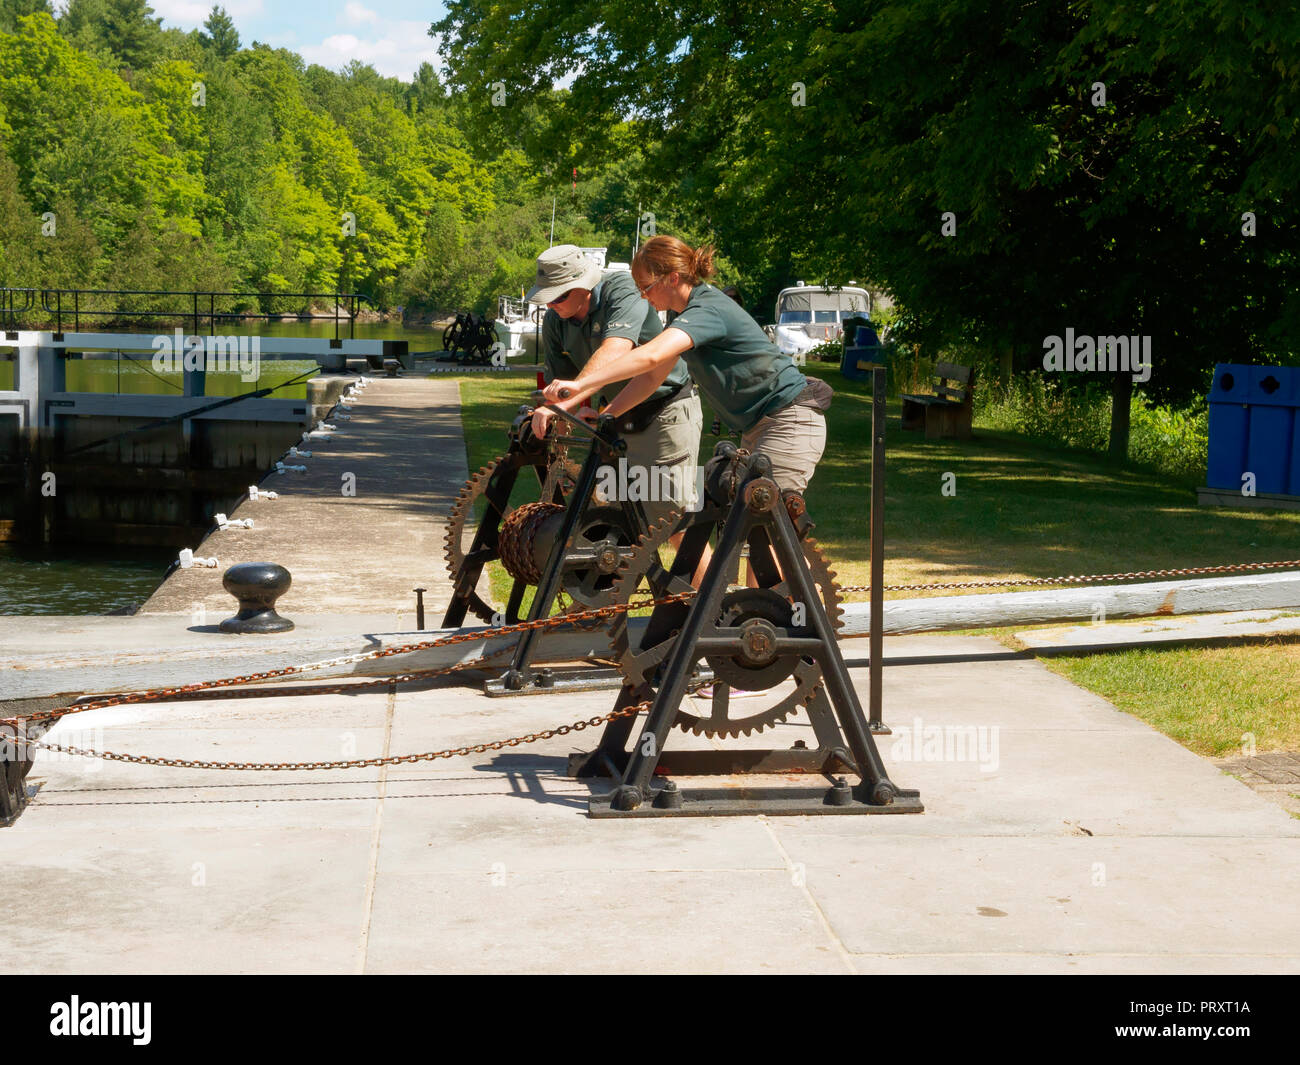 Lock keepers operate the locks by hand on the Rideau Canal, Ontario, Canada - Stock Image